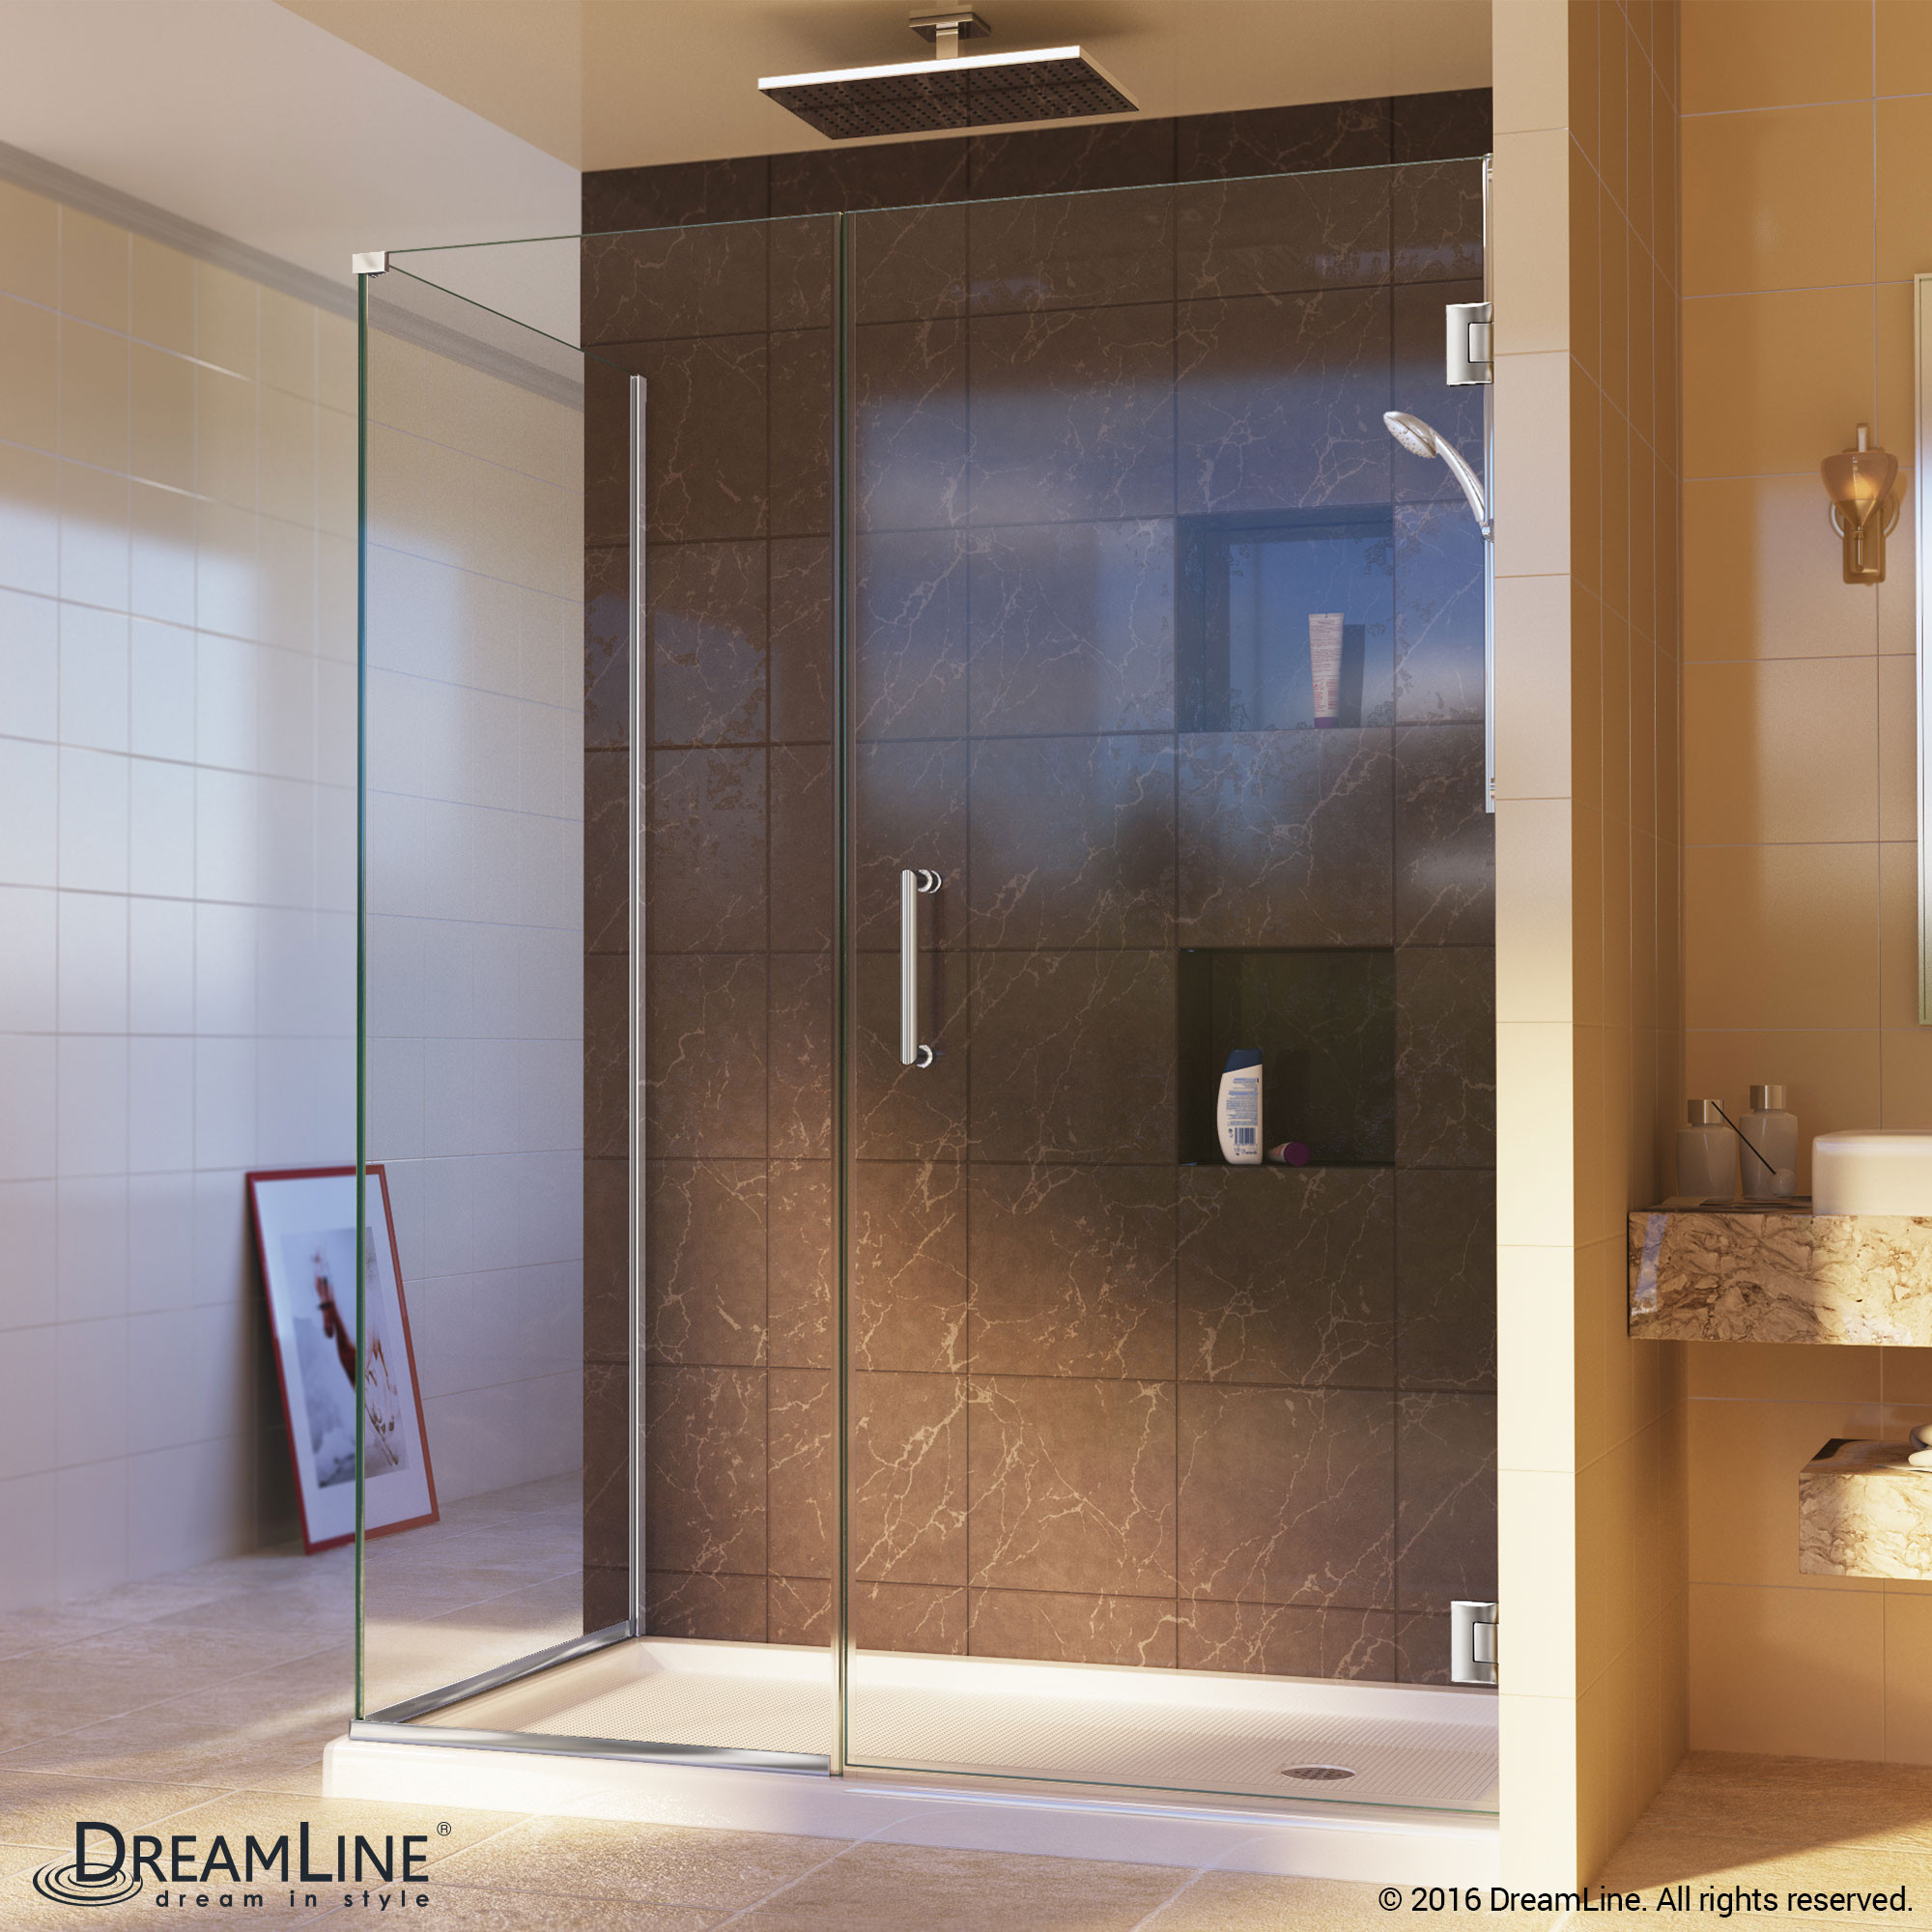 DreamLine SHEN-24495300-01 Unidoor Plus Hinged Shower Enclosure In Chrome Finish Hardware